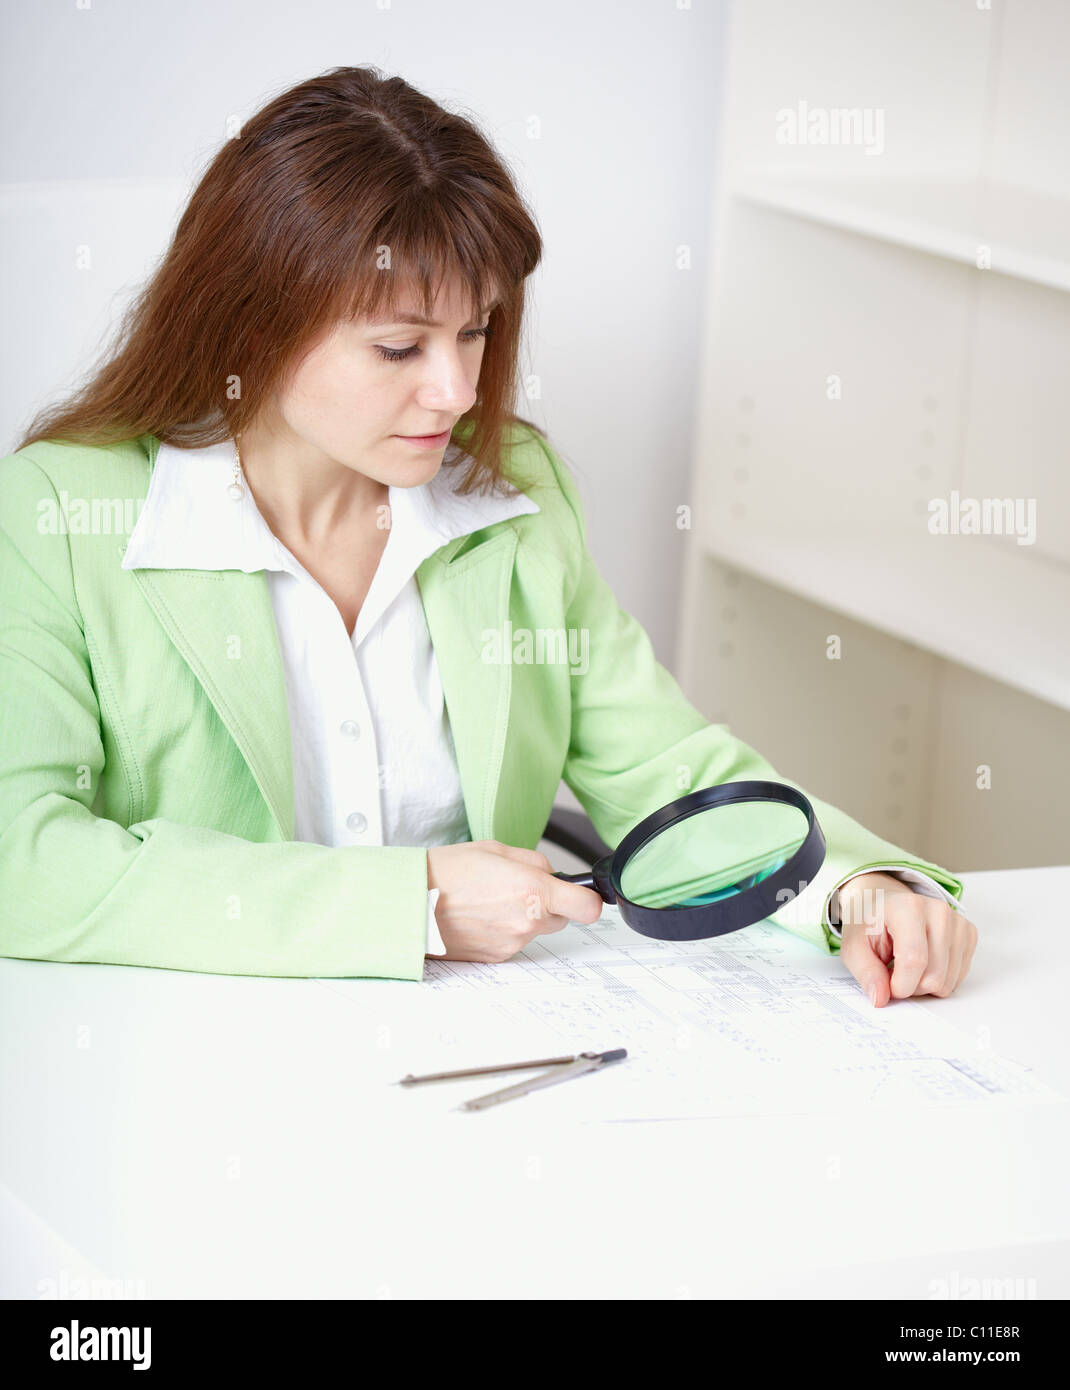 Beautiful girl works with drawing by means of magnifier - Stock Photo